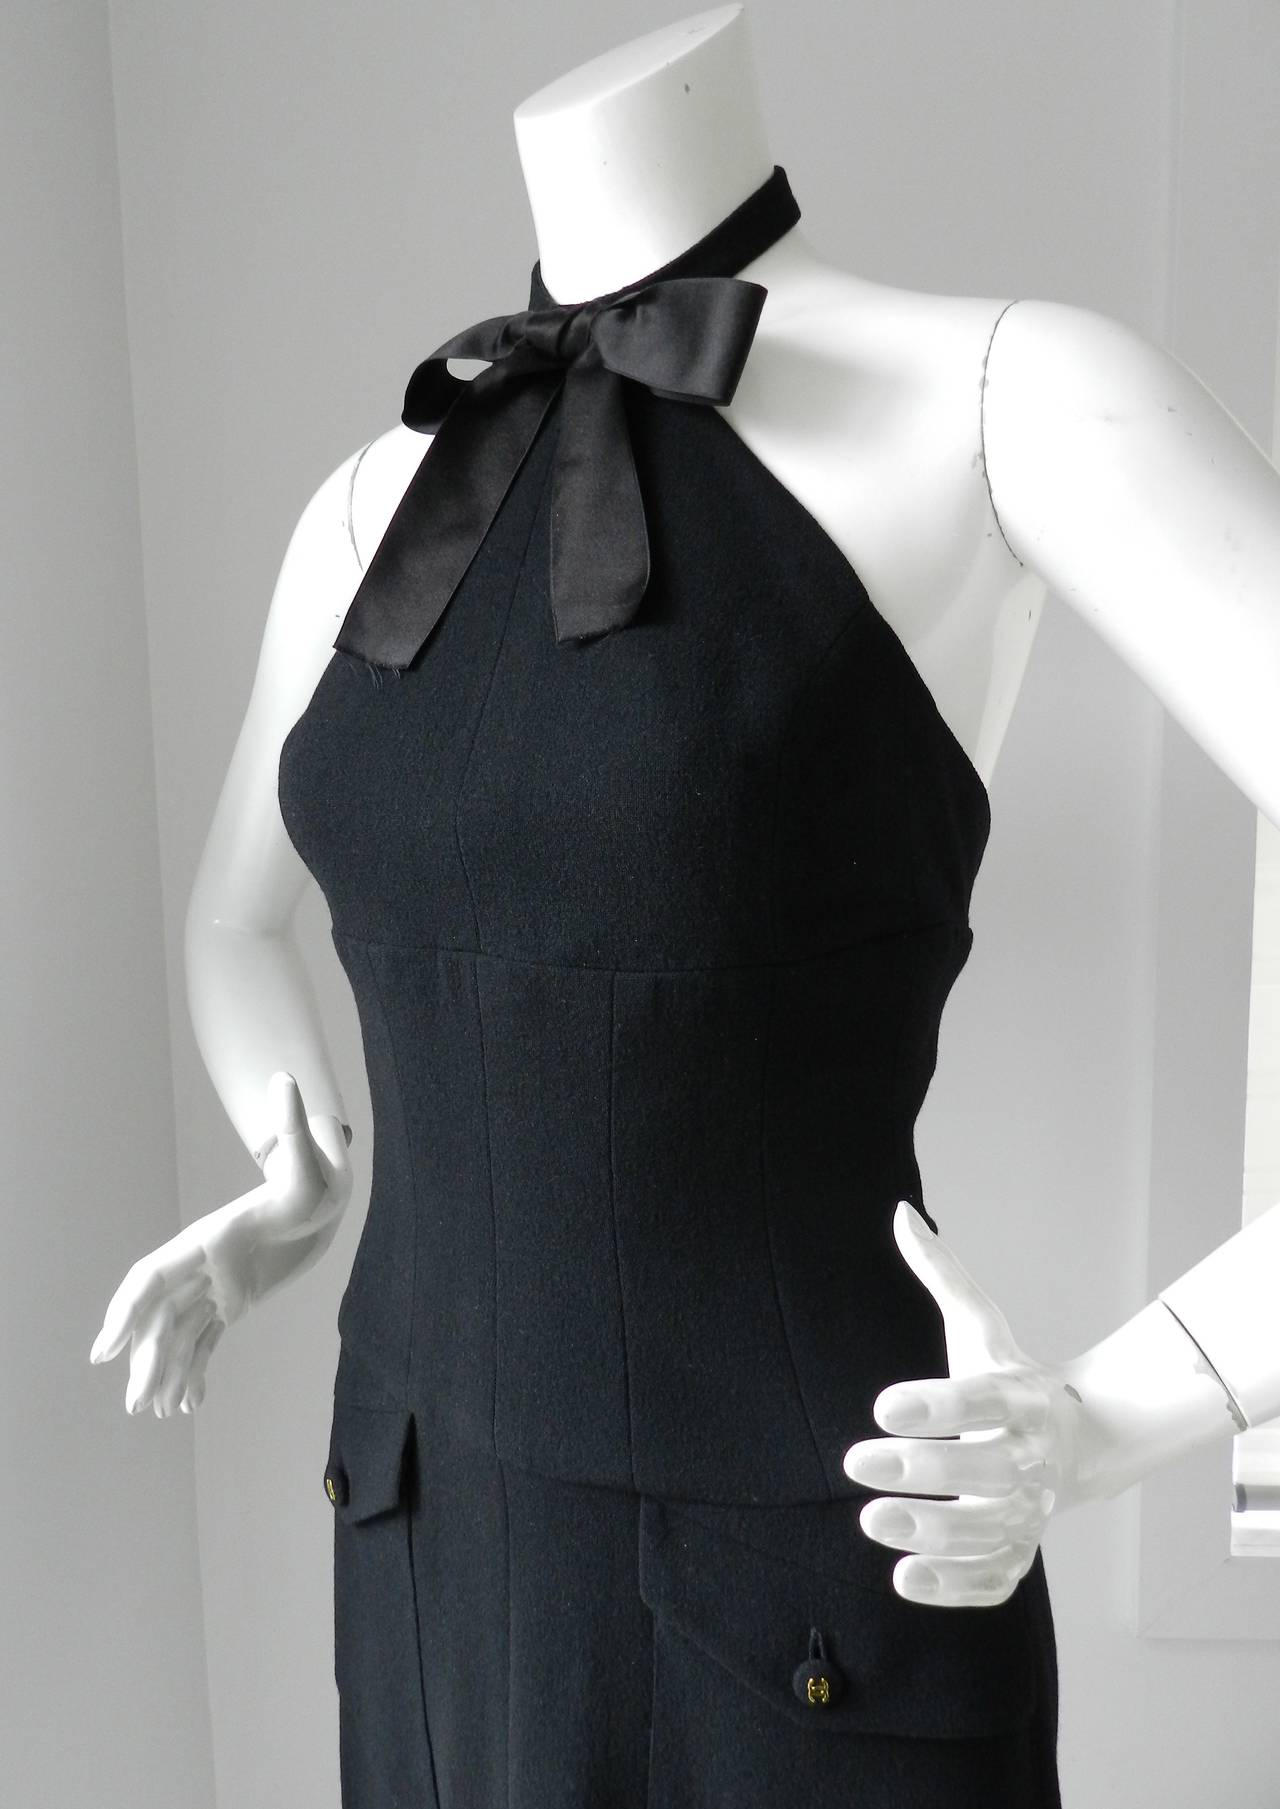 Vintage 1995 Chanel Classic Lagerfeld Black Halter Dress